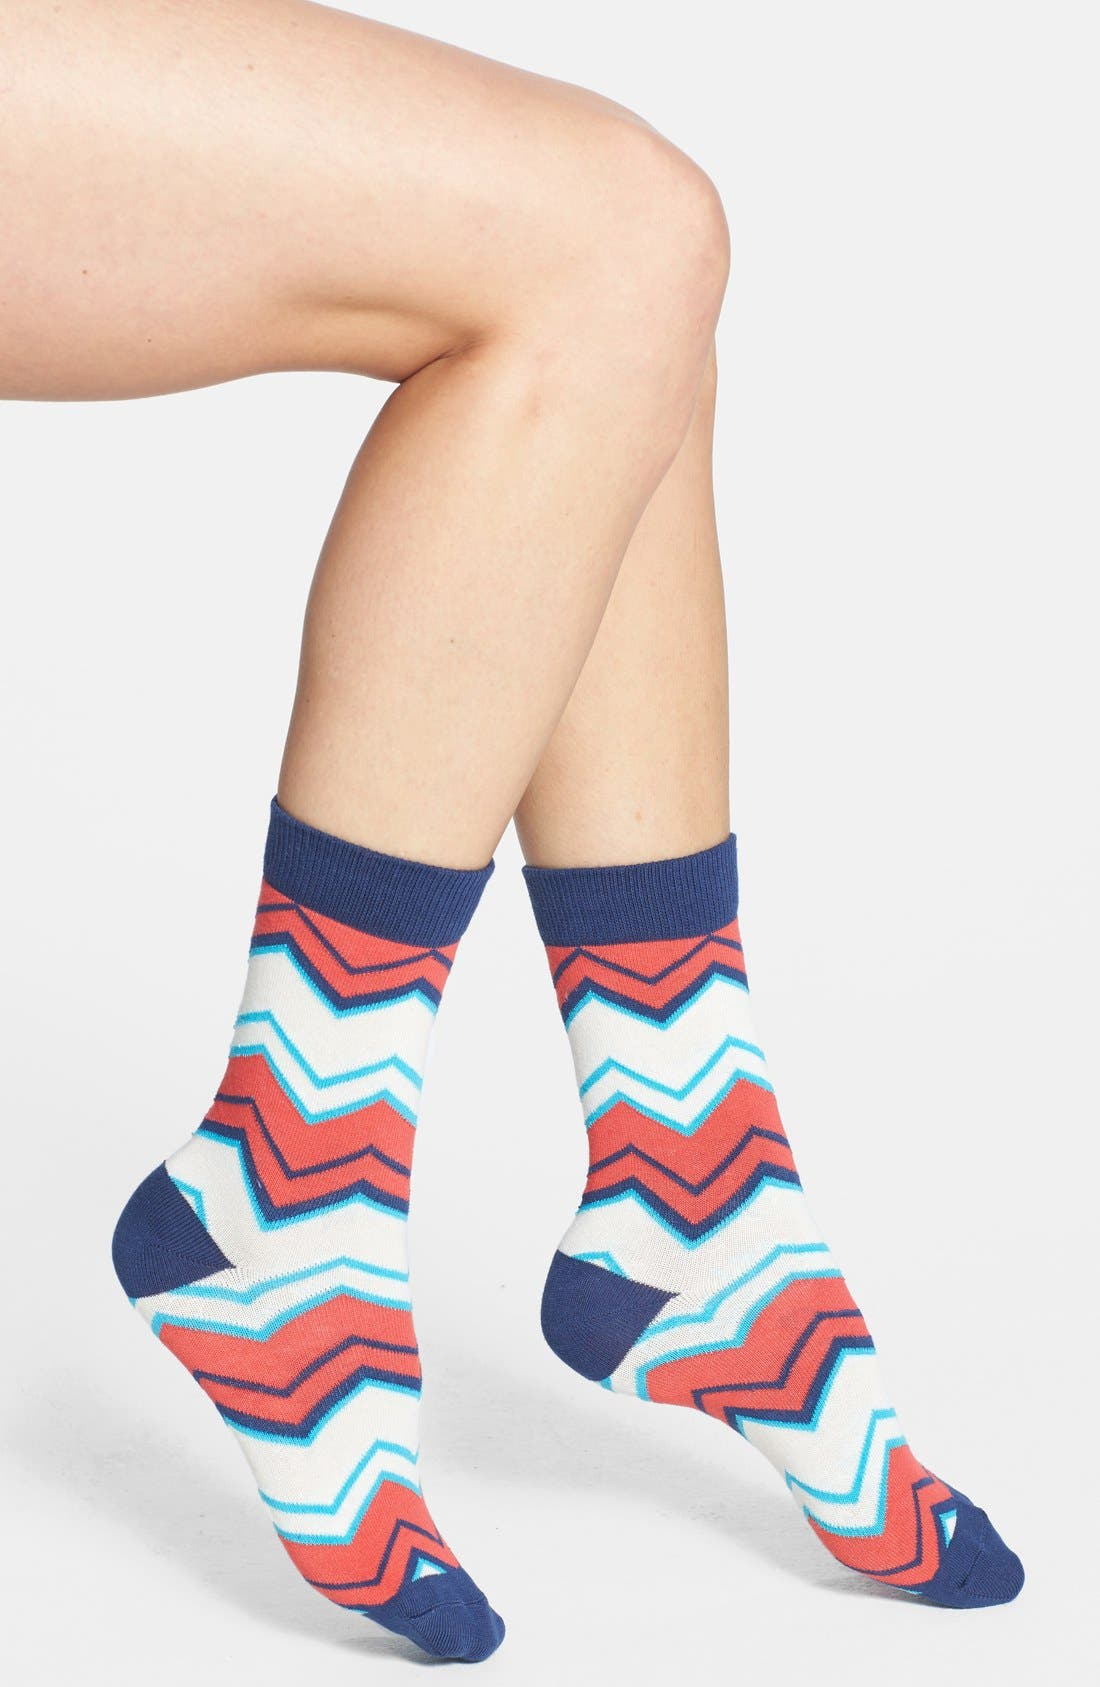 Alternate Image 1 Selected - Pact 'Watermelon Mountain' Organic Cotton Crew Socks